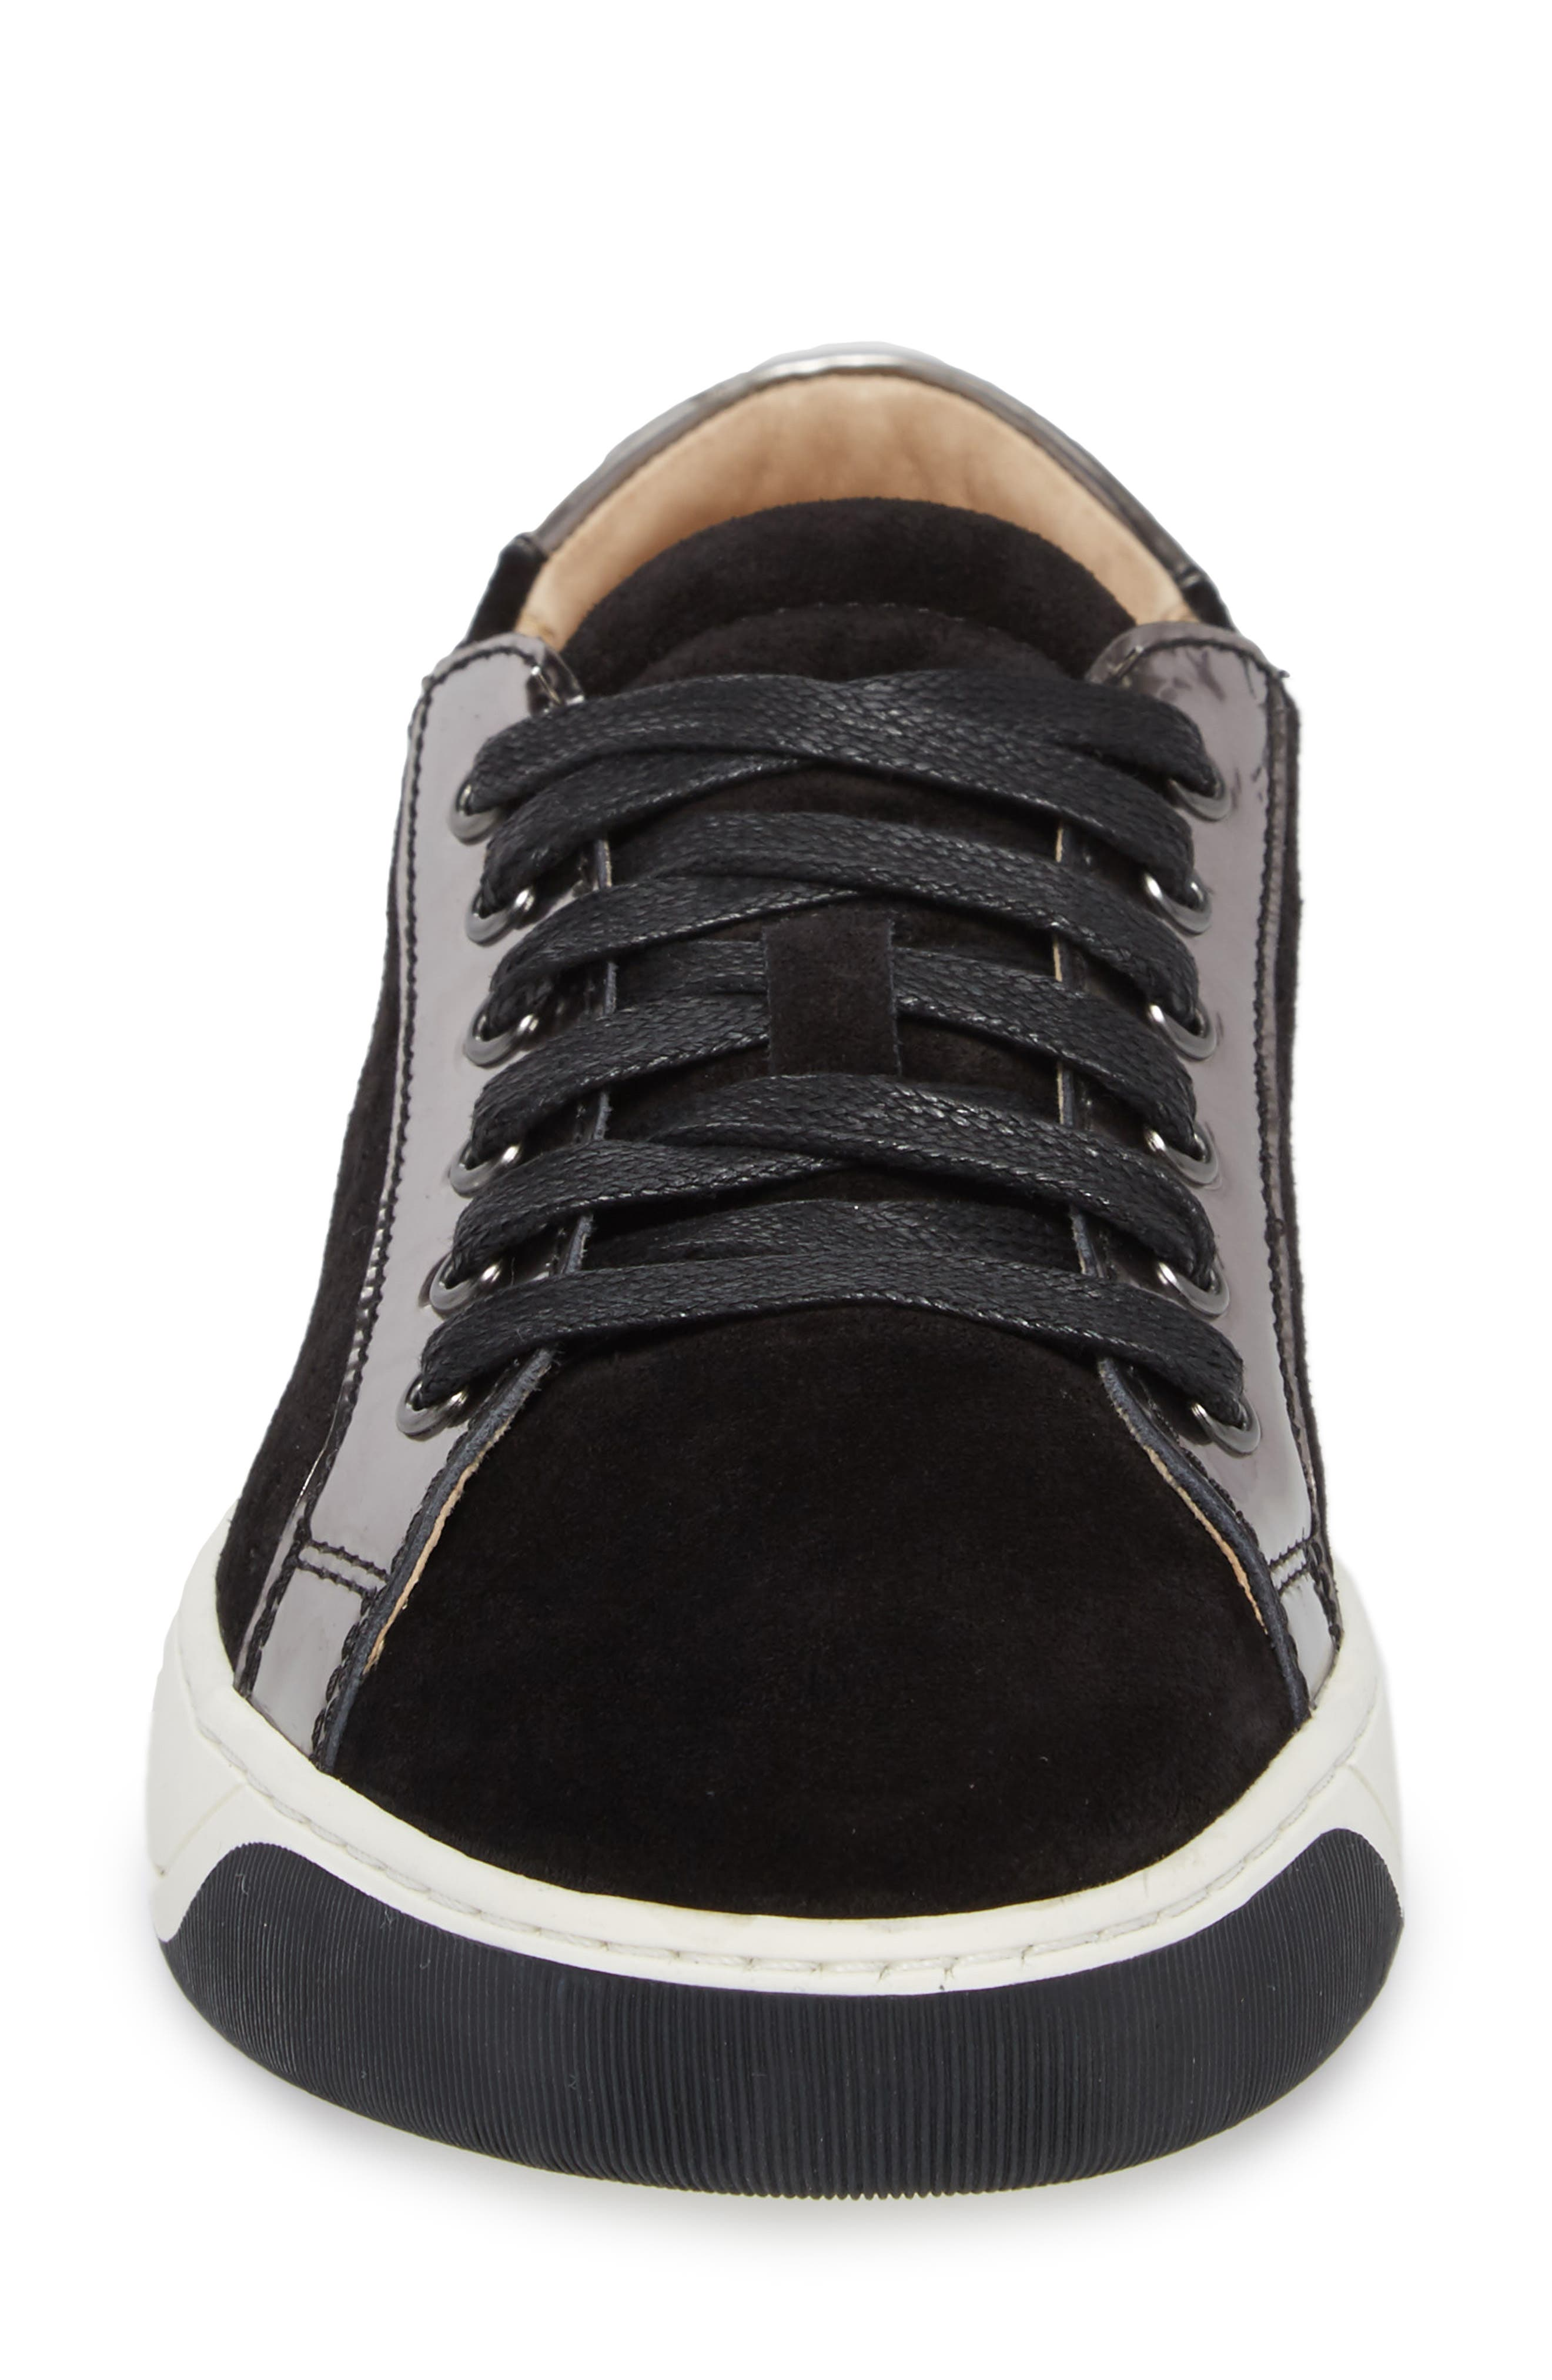 Emerson Perforated Sneaker,                             Alternate thumbnail 4, color,                             001